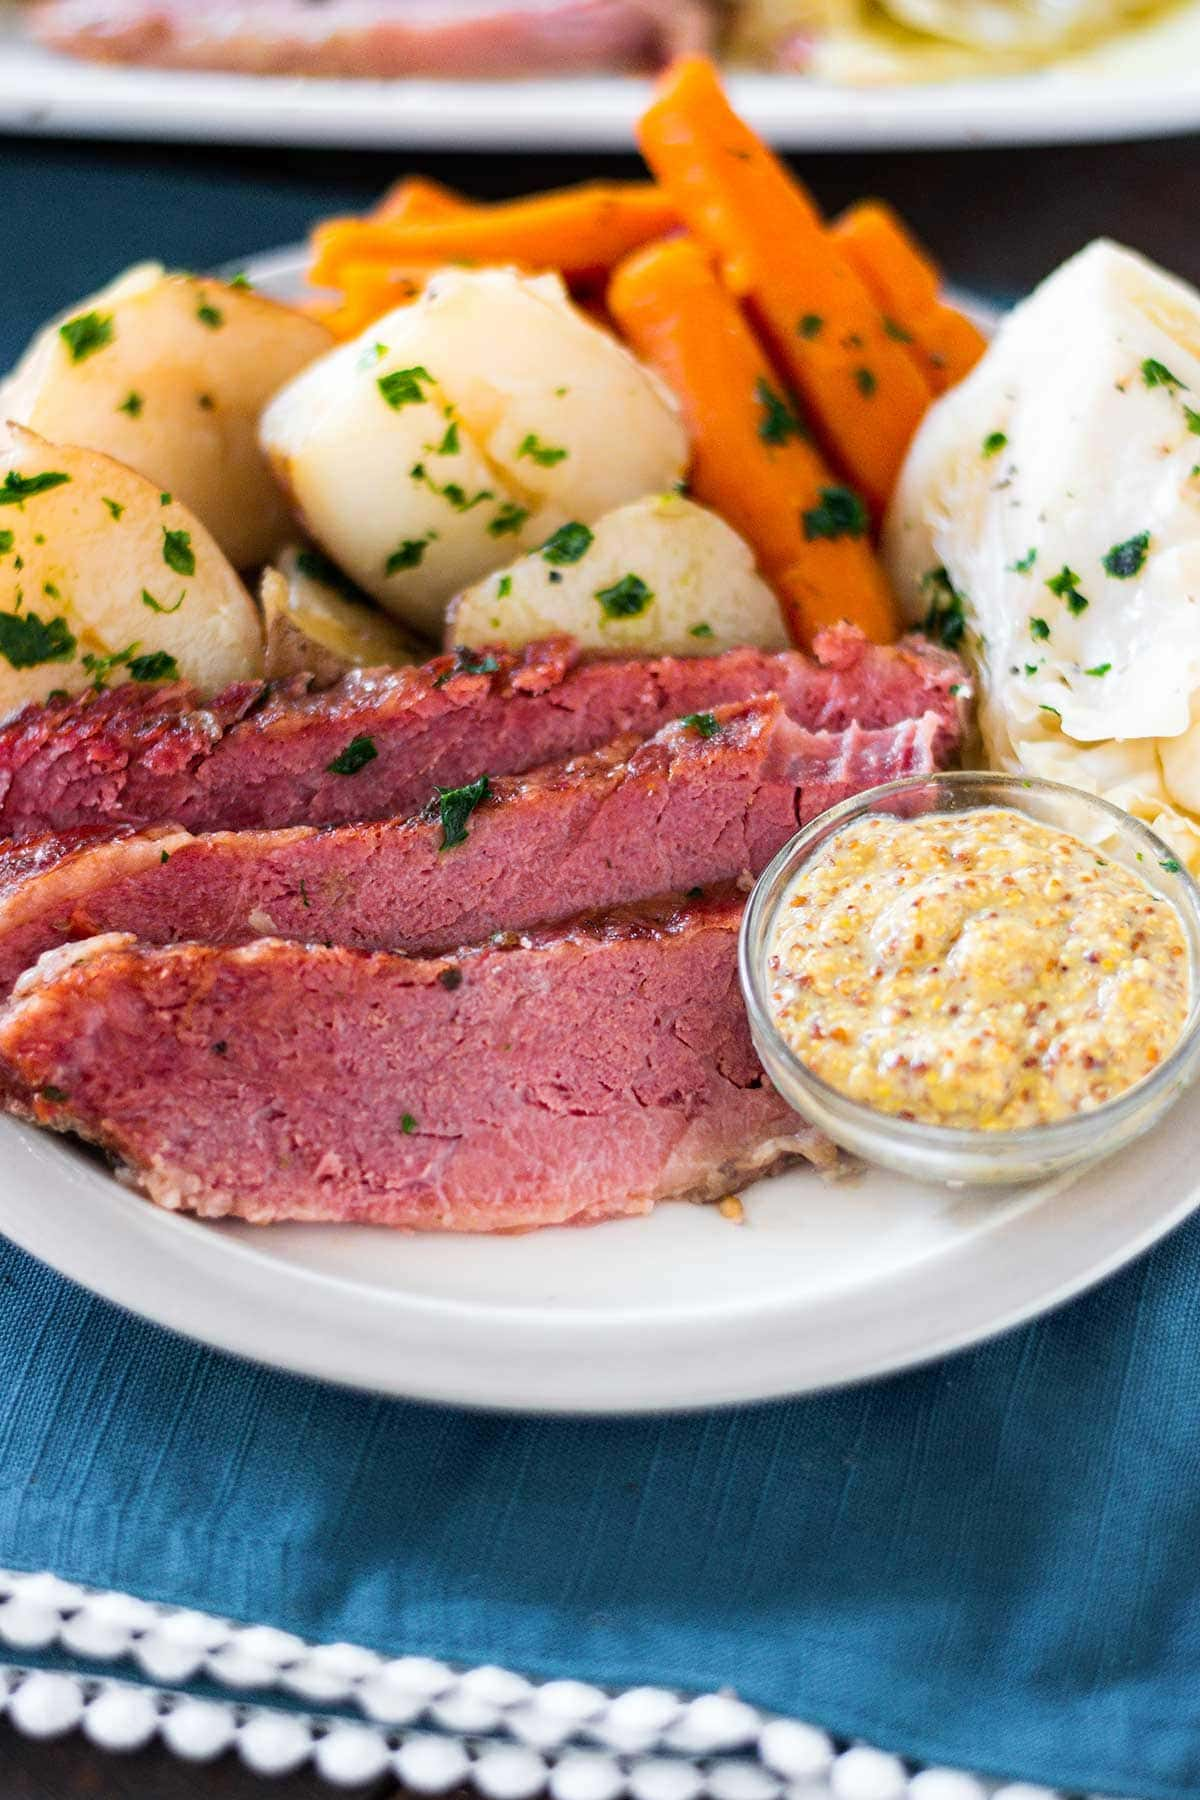 Corn beef and cabbage meal with potatoes and carrots on a white plate set on a blue placemat.